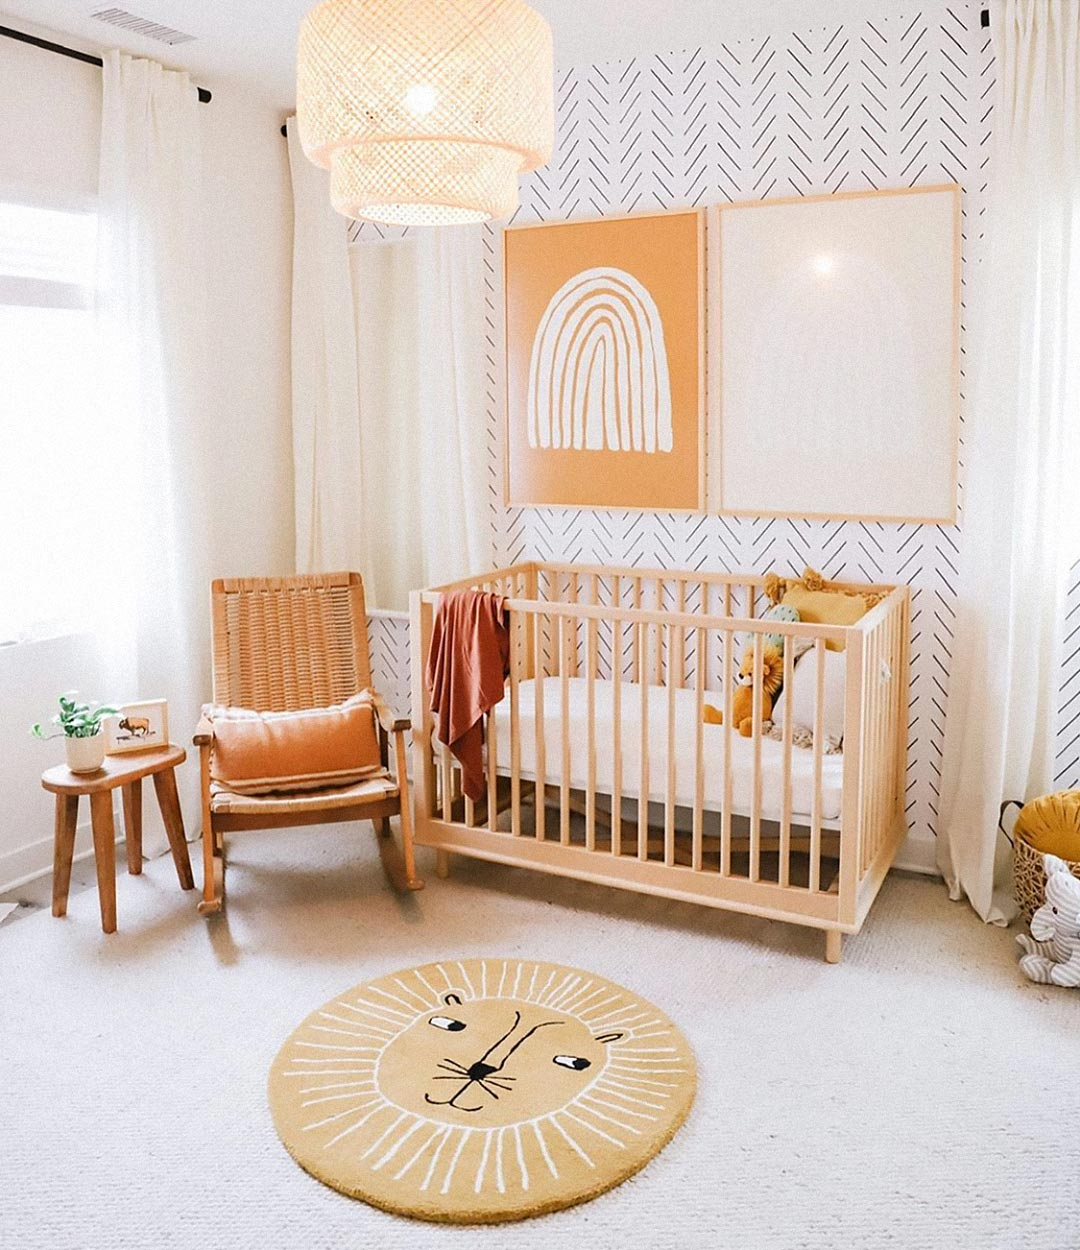 Rainbow baby nursery interior with white and mustard color scheme, self adhesive wallpaper with modern herringbone design print, jungle baby room theme and rainbow posters